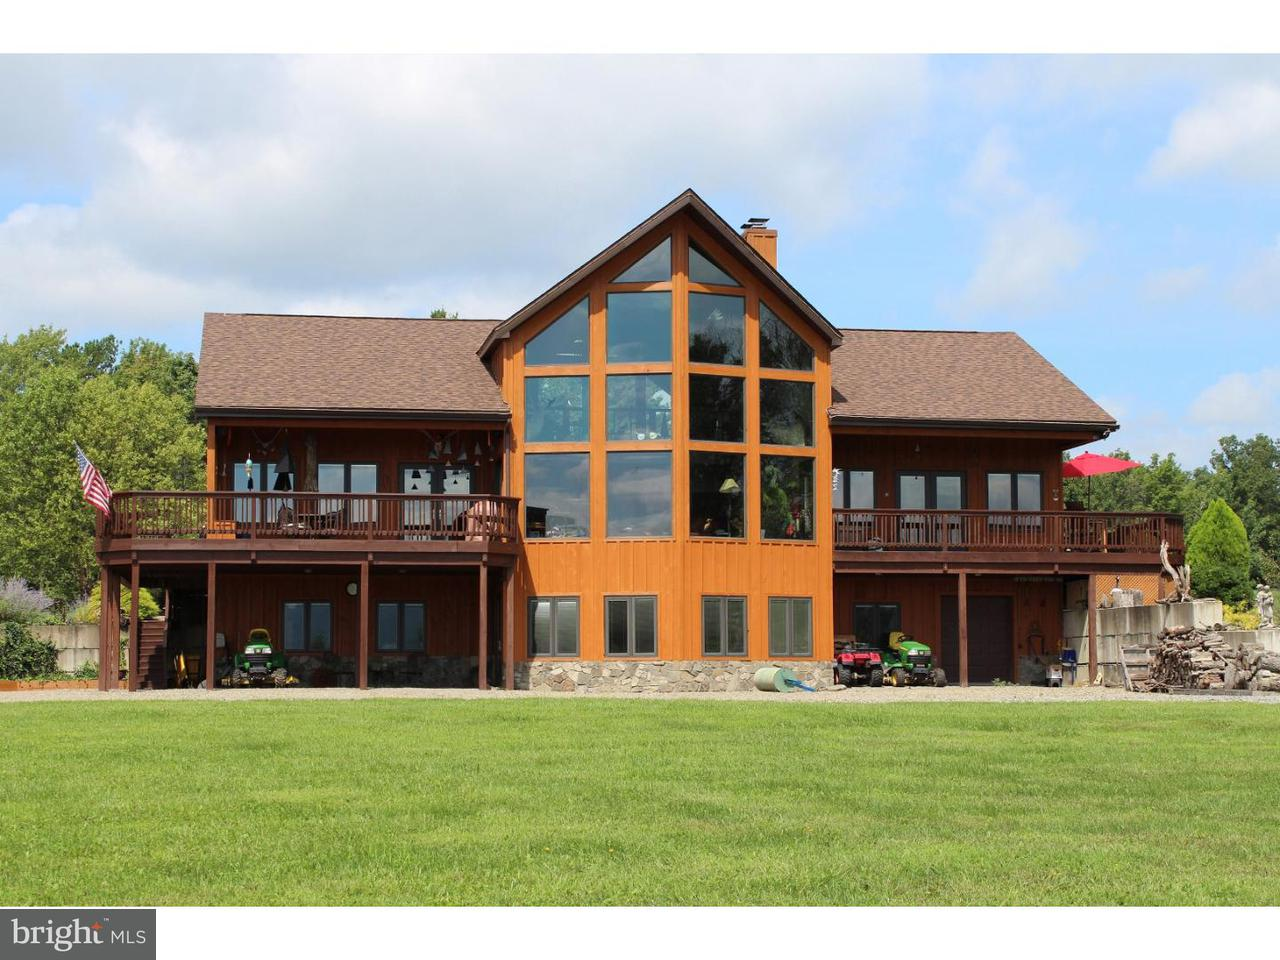 Single Family Home for Sale at 93 FRANKLIN Road Towanda, Pennsylvania 18848 United States